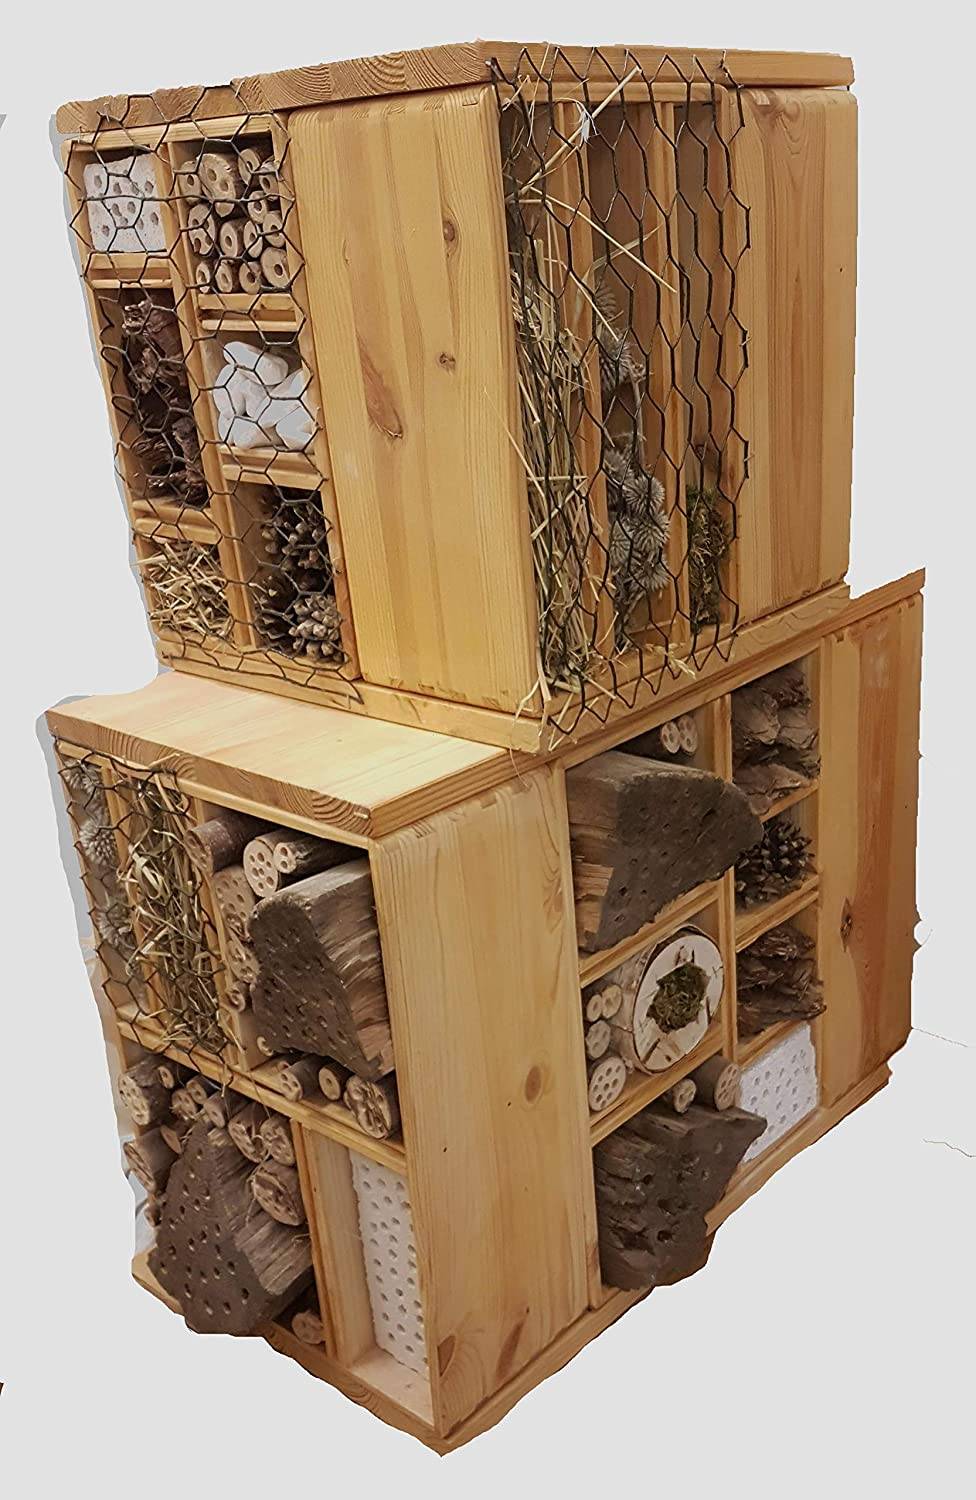 D2K2 Insect Hotel Cube Set